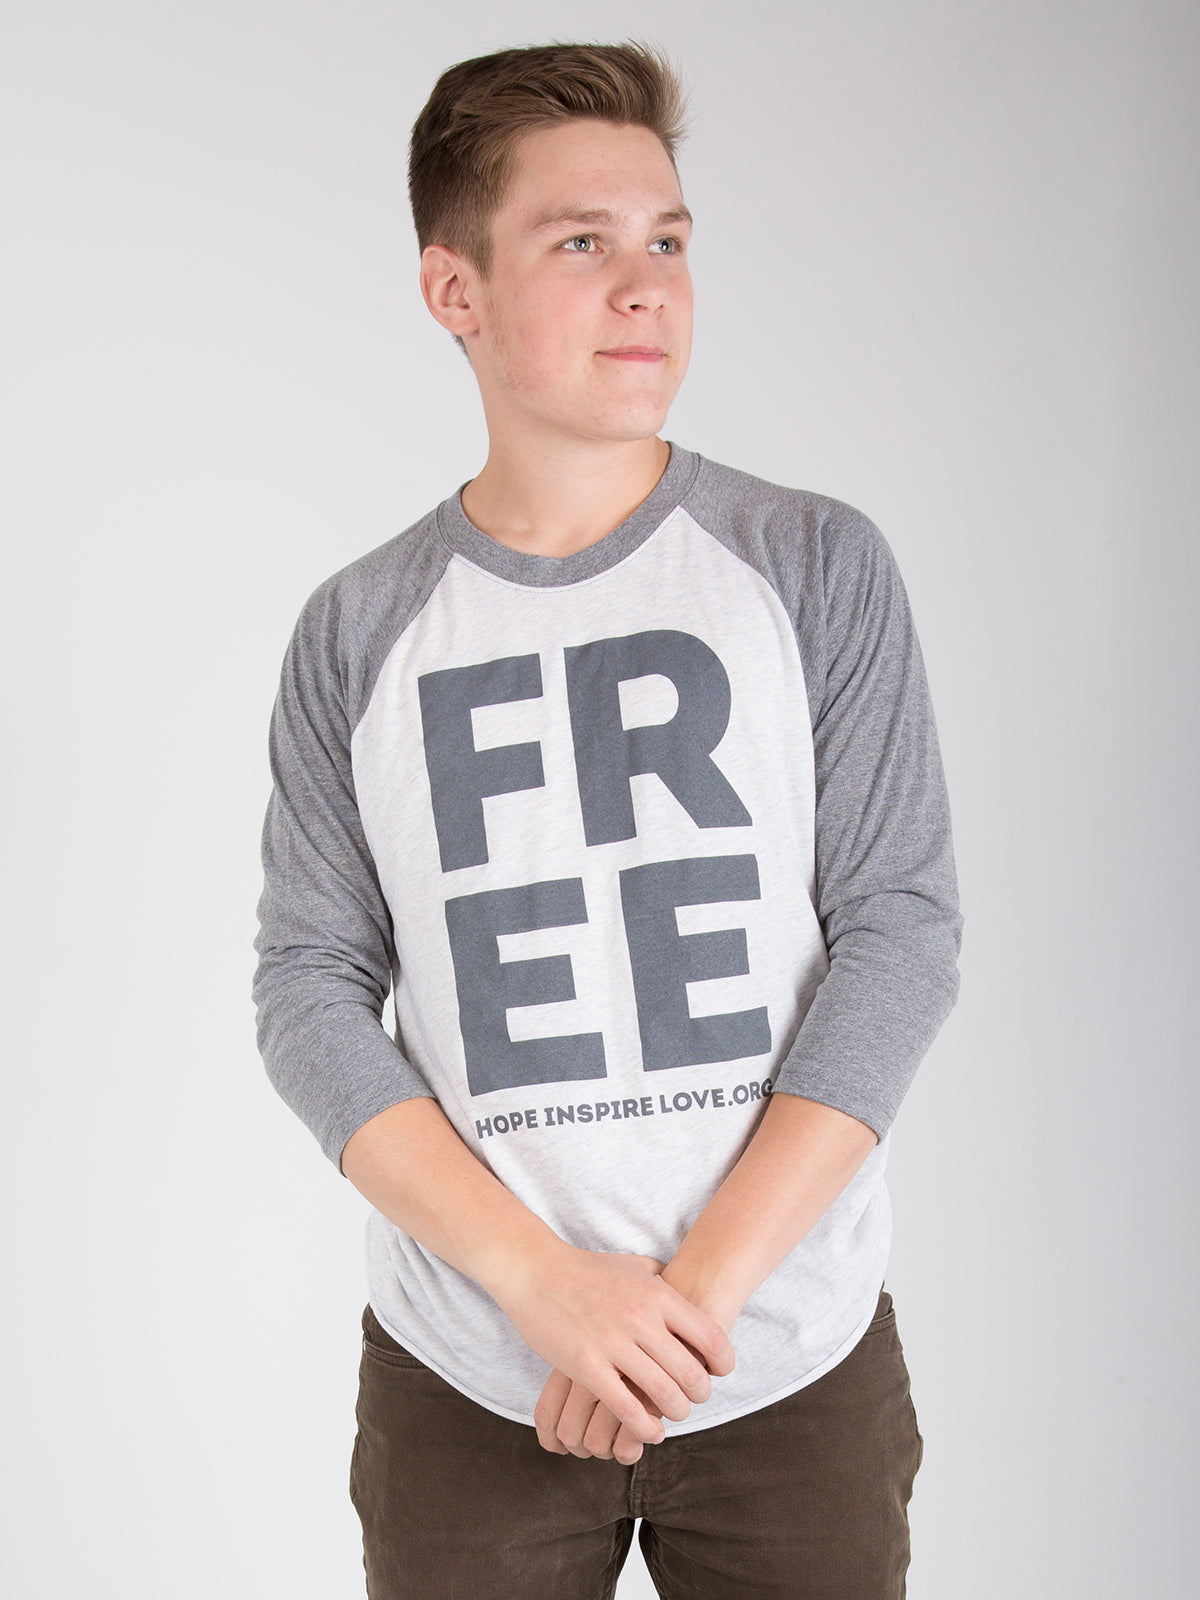 FREE 3/4 Sleeve Baseball Tee - Light Grey - Unisex